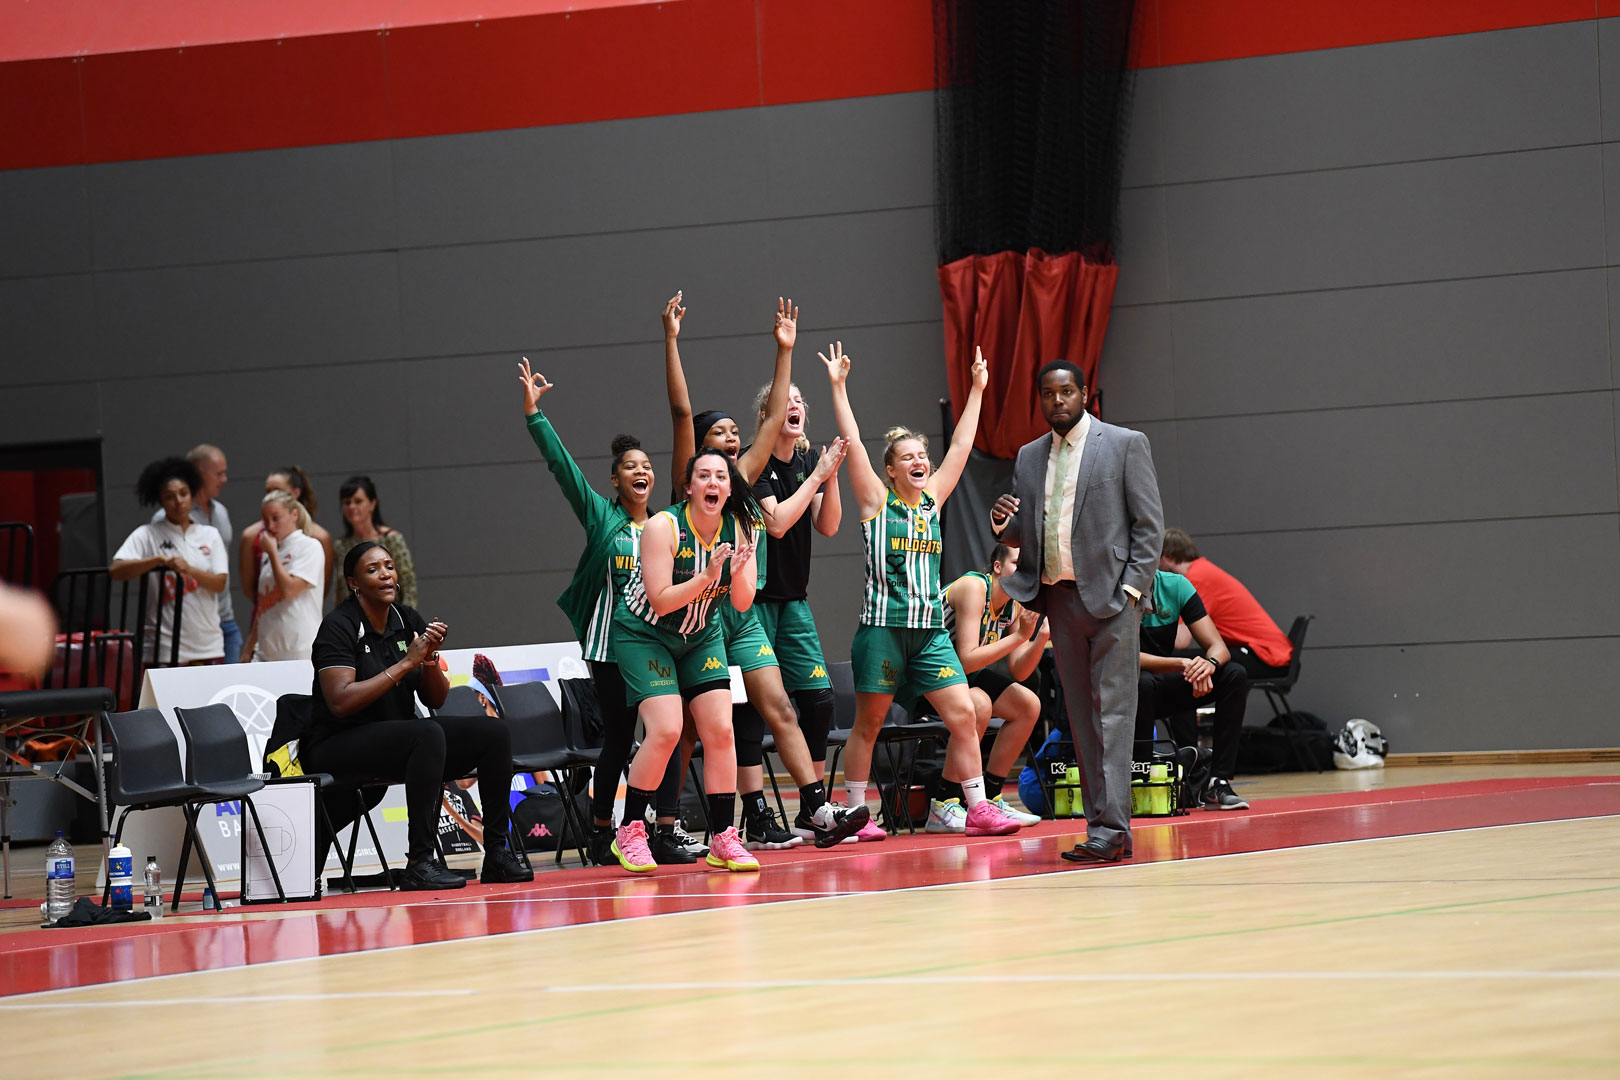 Game photos from Nottingham Wildcats vs Manchester Mystics in the Betty Codona Trophy 28/09/2019